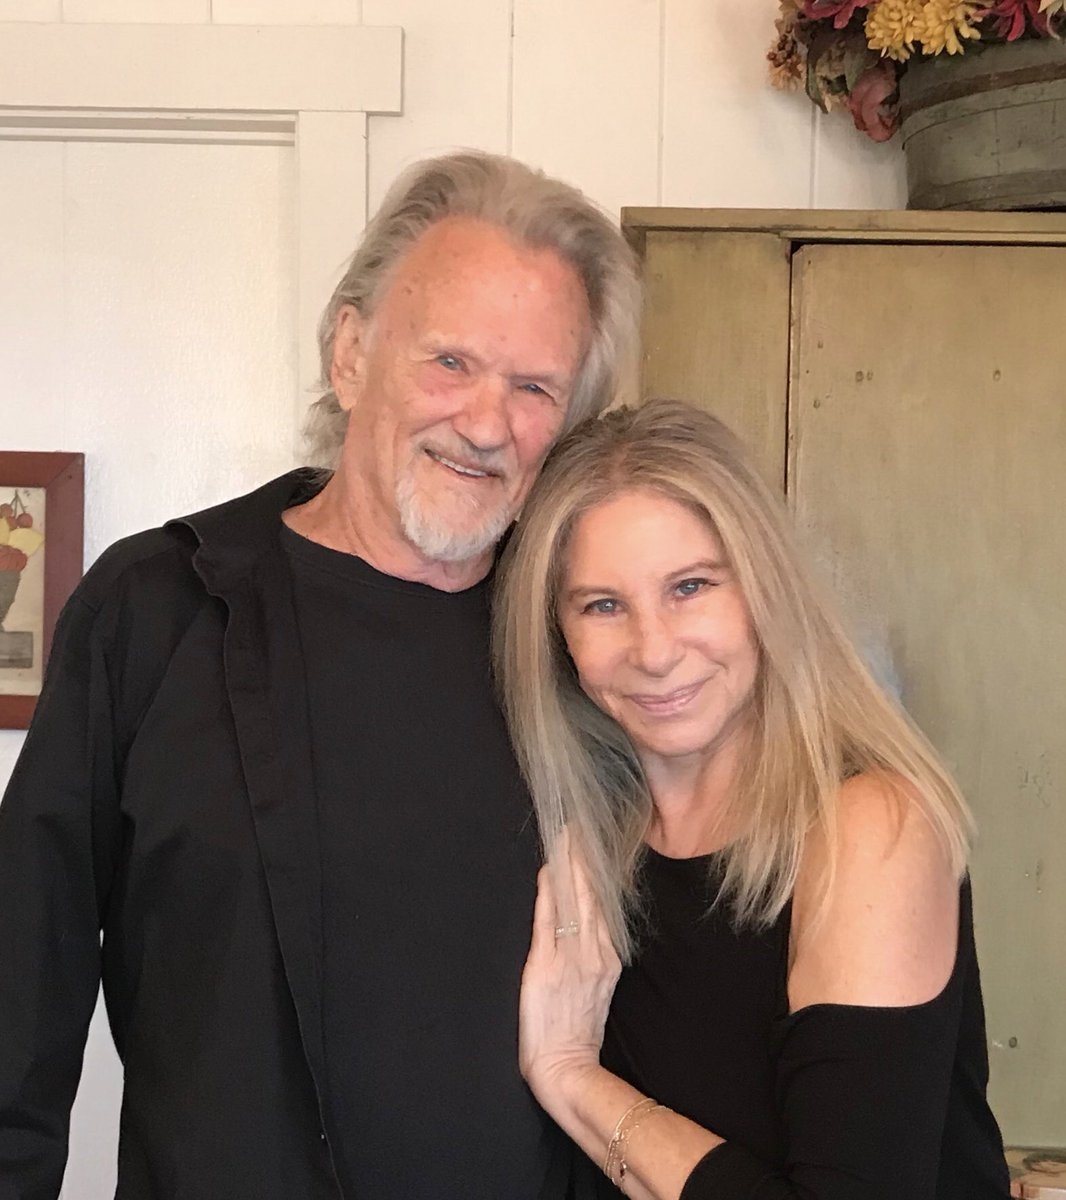 It was so wonderful to see my friend Kris who stopped by yesterday. Stay tuned...😉